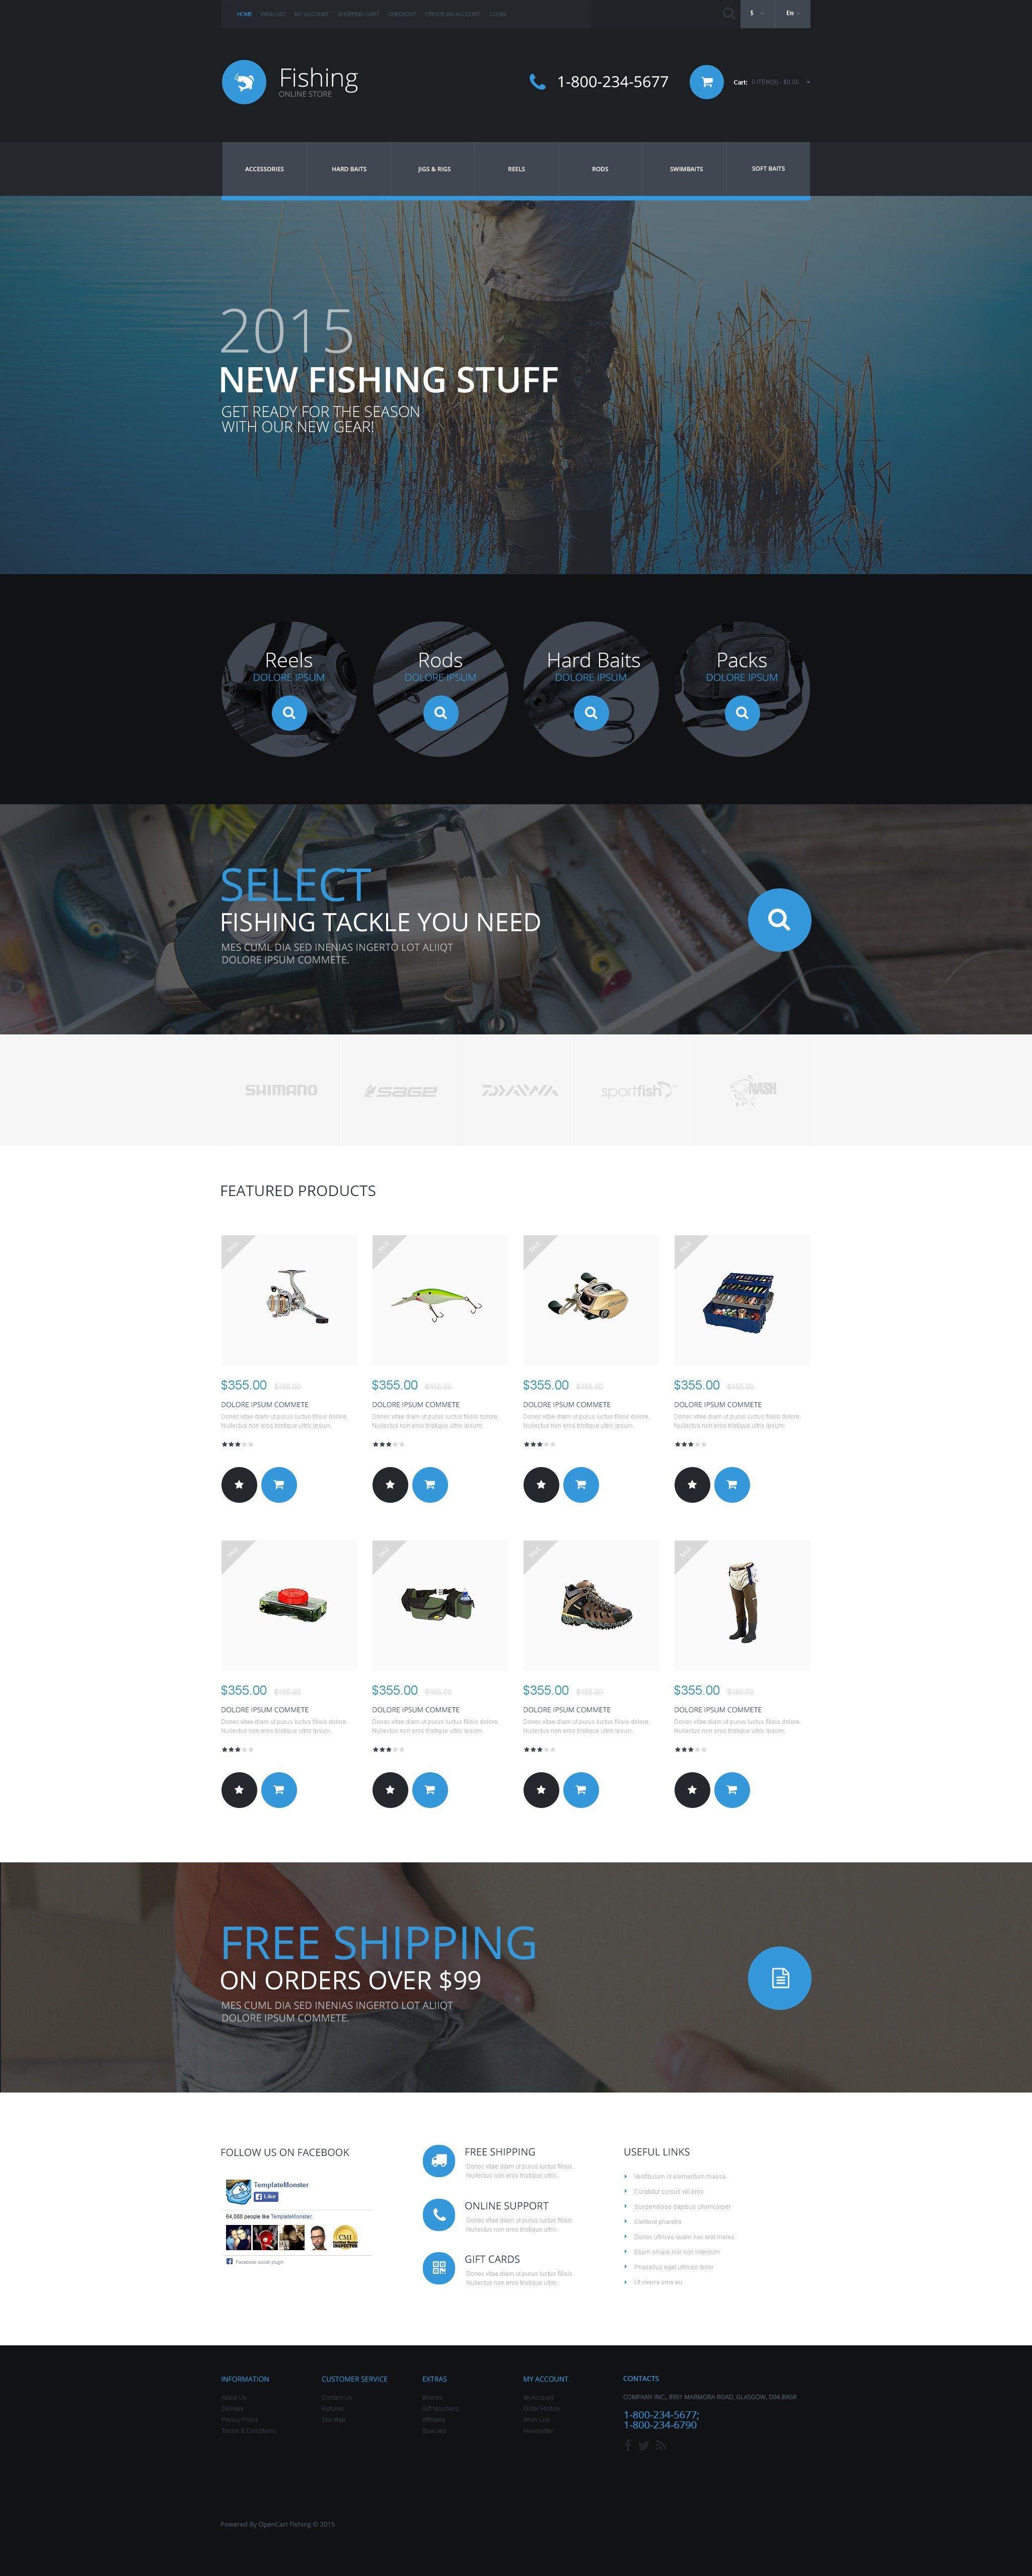 The Fishing Store OpenCart Design 53849, one of the best OpenCart templates of its kind (sport, most popular), also known as fishing store OpenCart template, site OpenCart template, fisherman OpenCart template, boat OpenCart template, rods OpenCart template, reels OpenCart template, baits OpenCart template, swimbaits OpenCart template, jigs OpenCart template, rogs OpenCart template, tools OpenCart template, spinning OpenCart template, fishing OpenCart template, line and related with fishing store, site, fisherman, boat, rods, reels, baits, swimbaits, jigs, rogs, tools, spinning, fishing, line, etc.